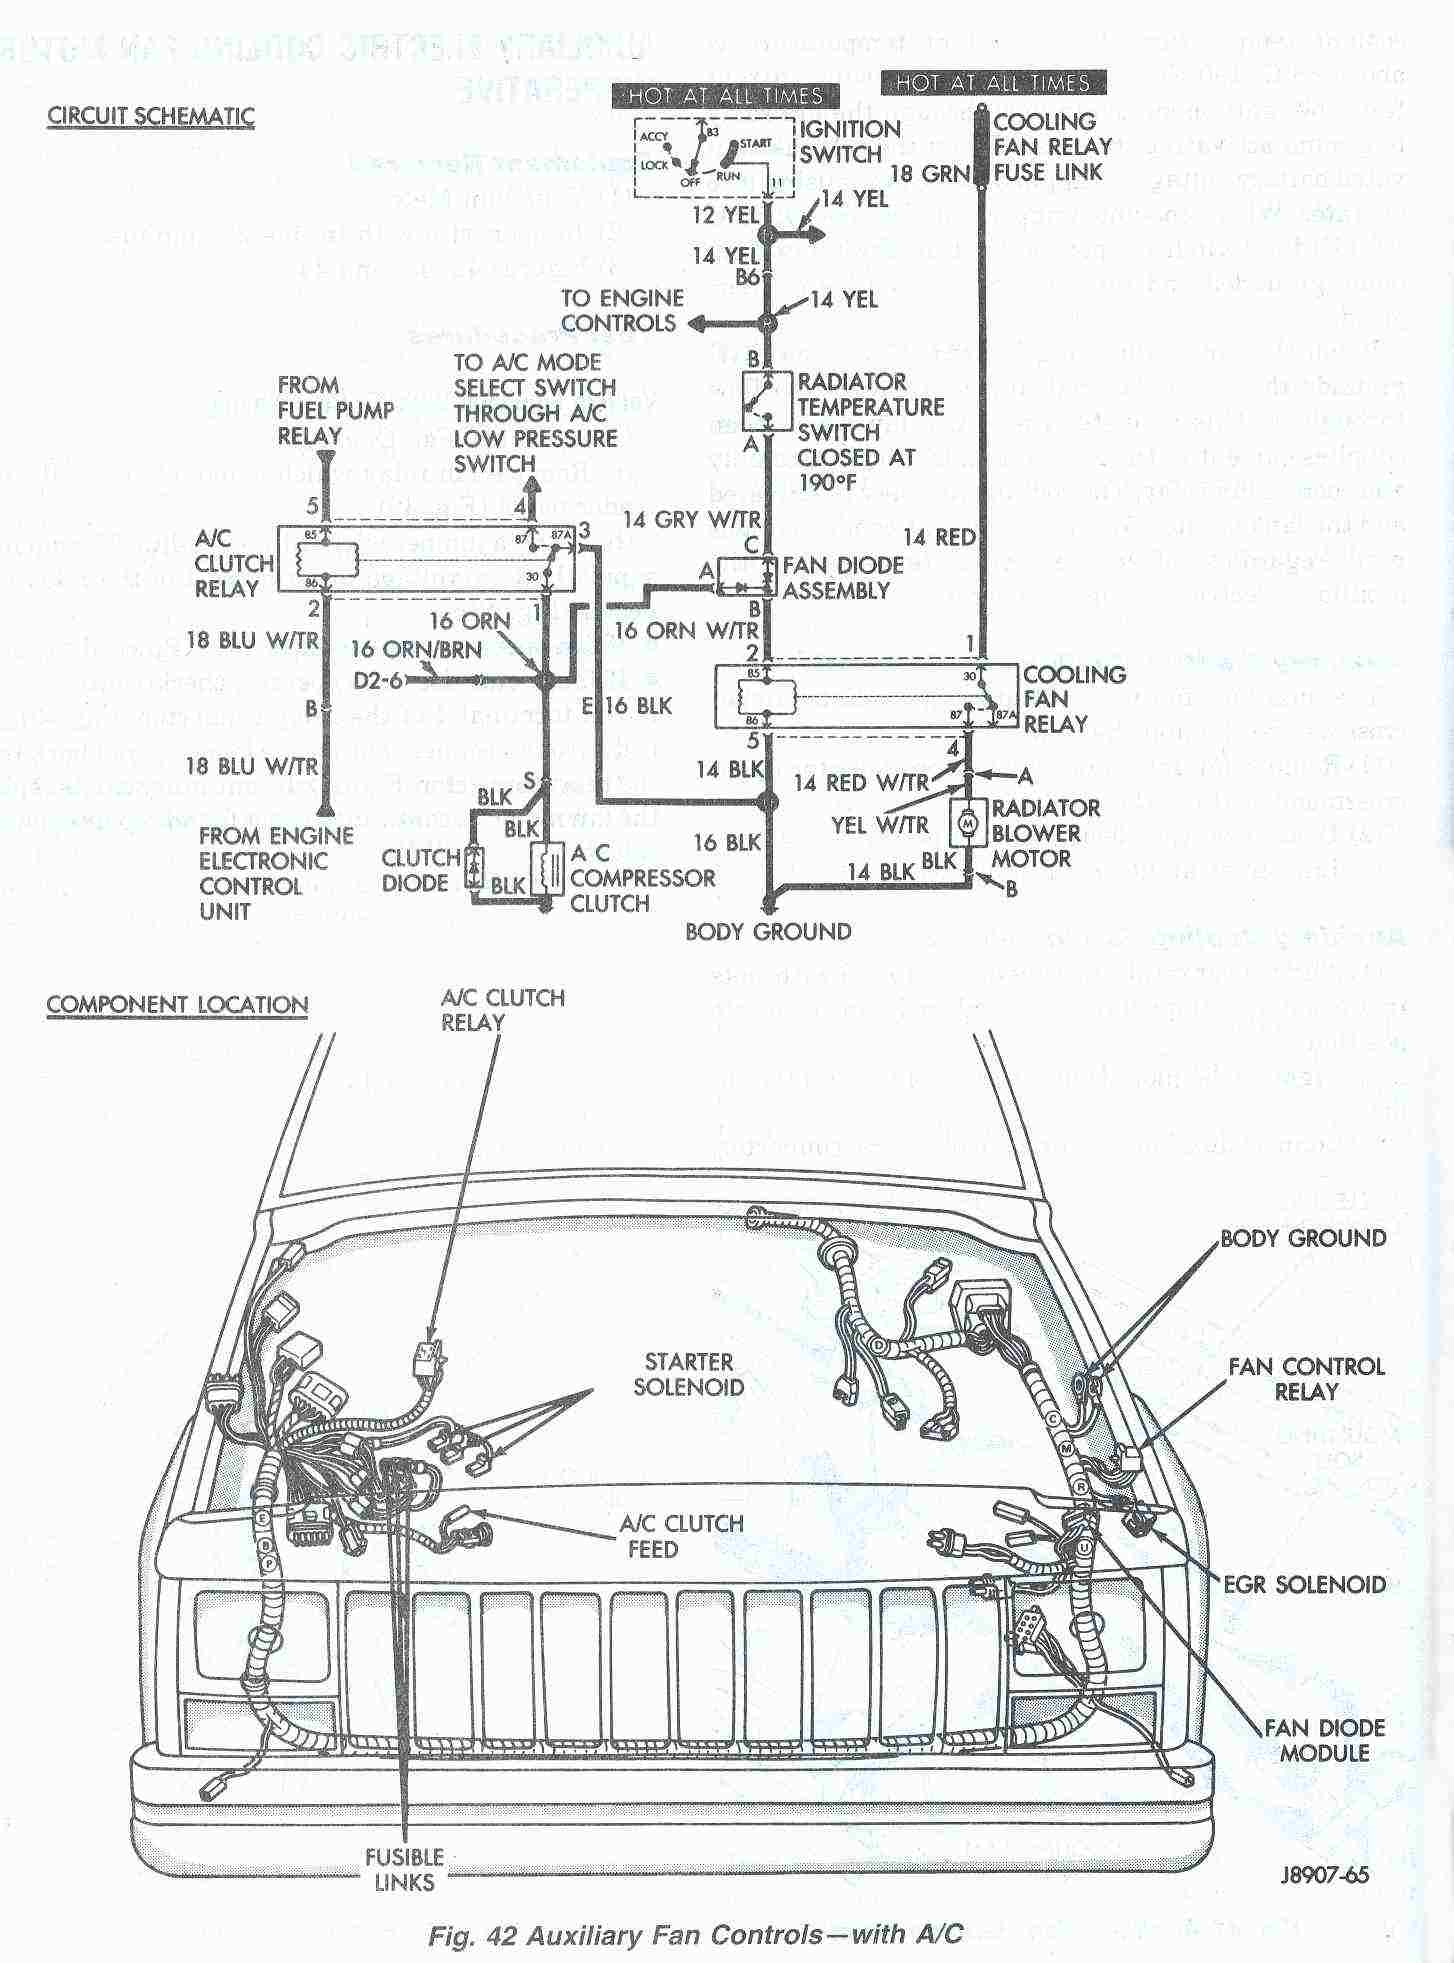 Test Procedures For Vehicle Equipped With Air Conditioning